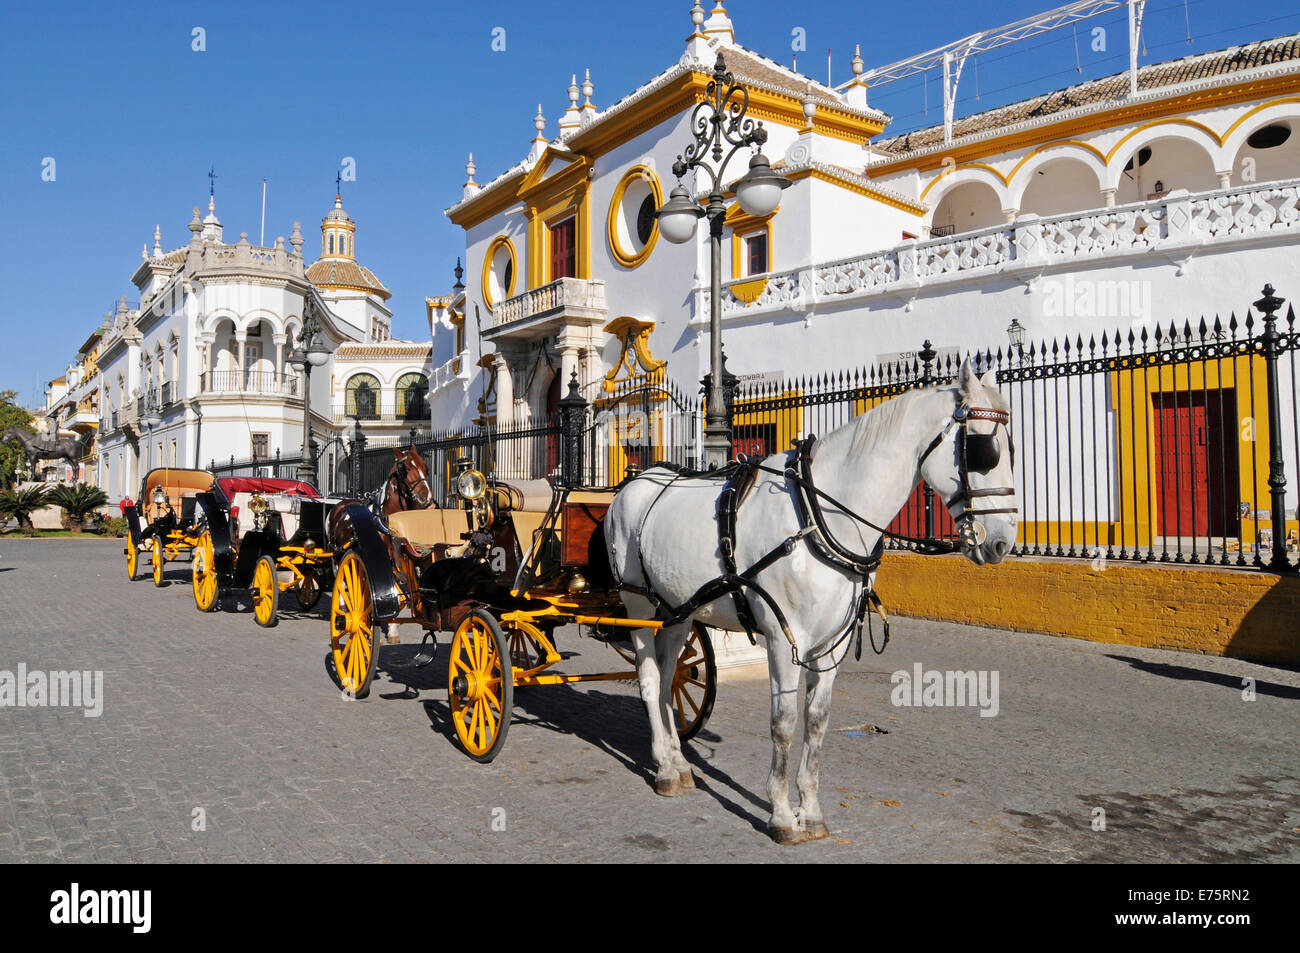 Horse-drawn carriages, Plaza de Toros de la Maestranza, bullring, museum, Seville, Andalusia, Spain - Stock Image